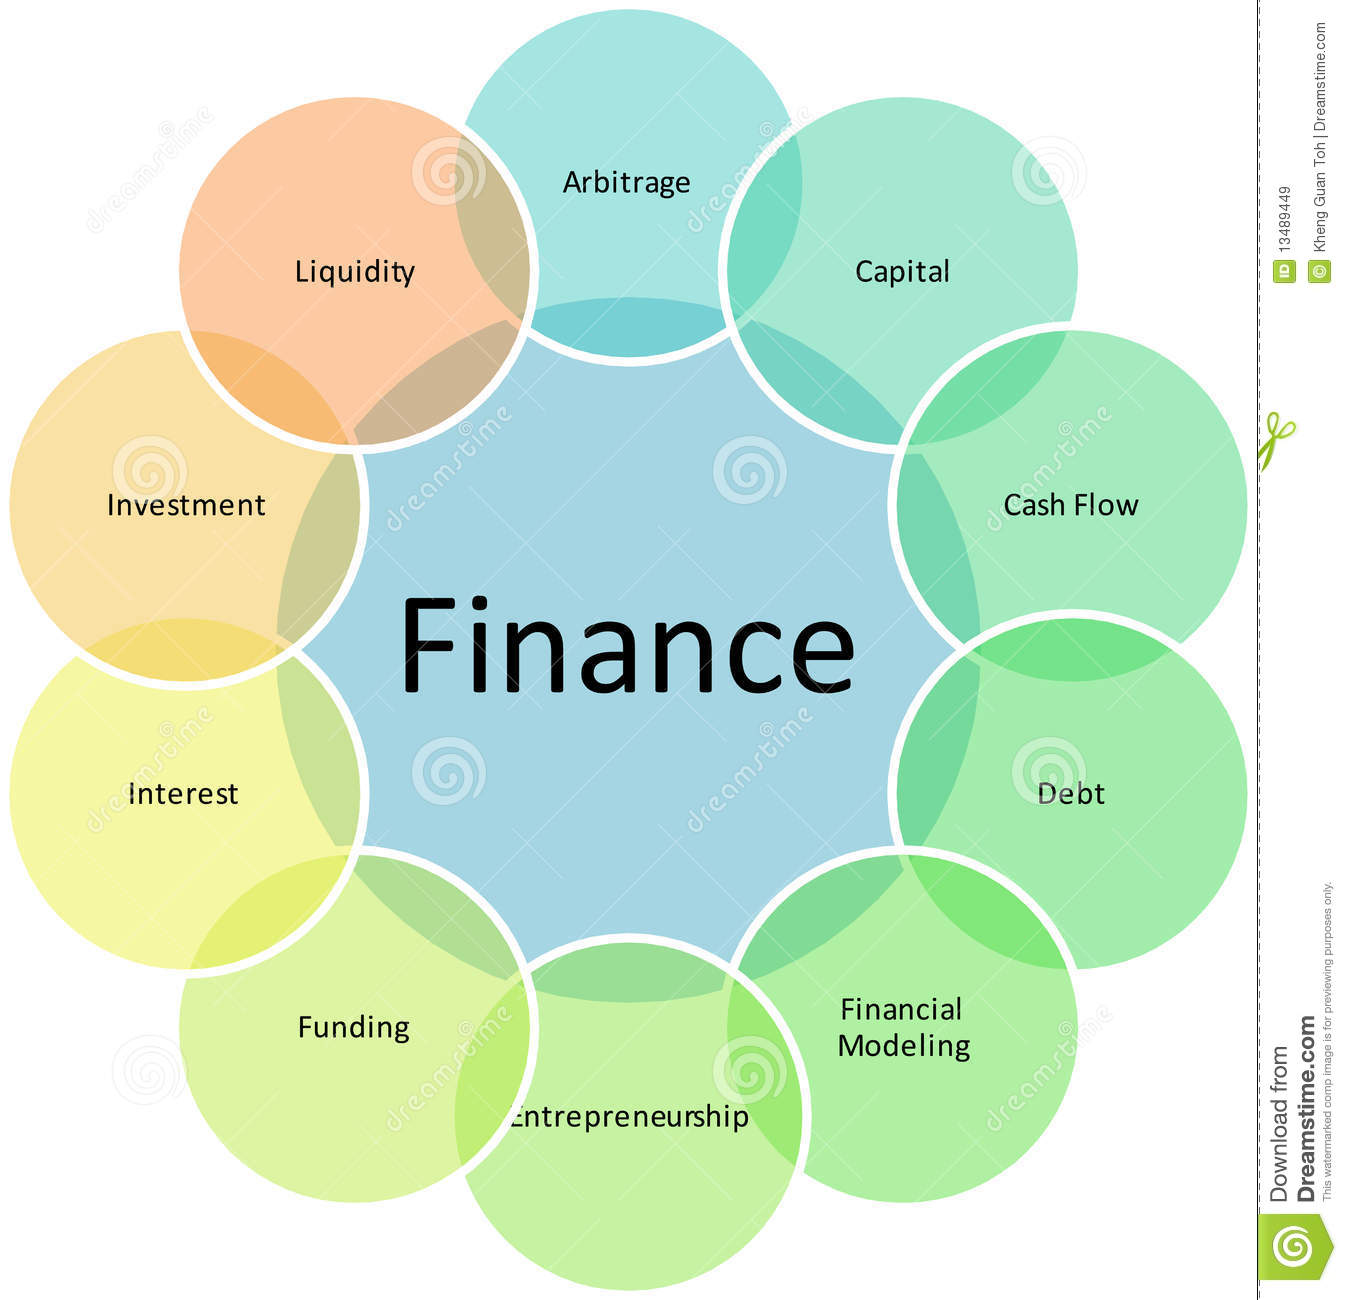 Finance: Finance Components Business Diagram Stock Illustration